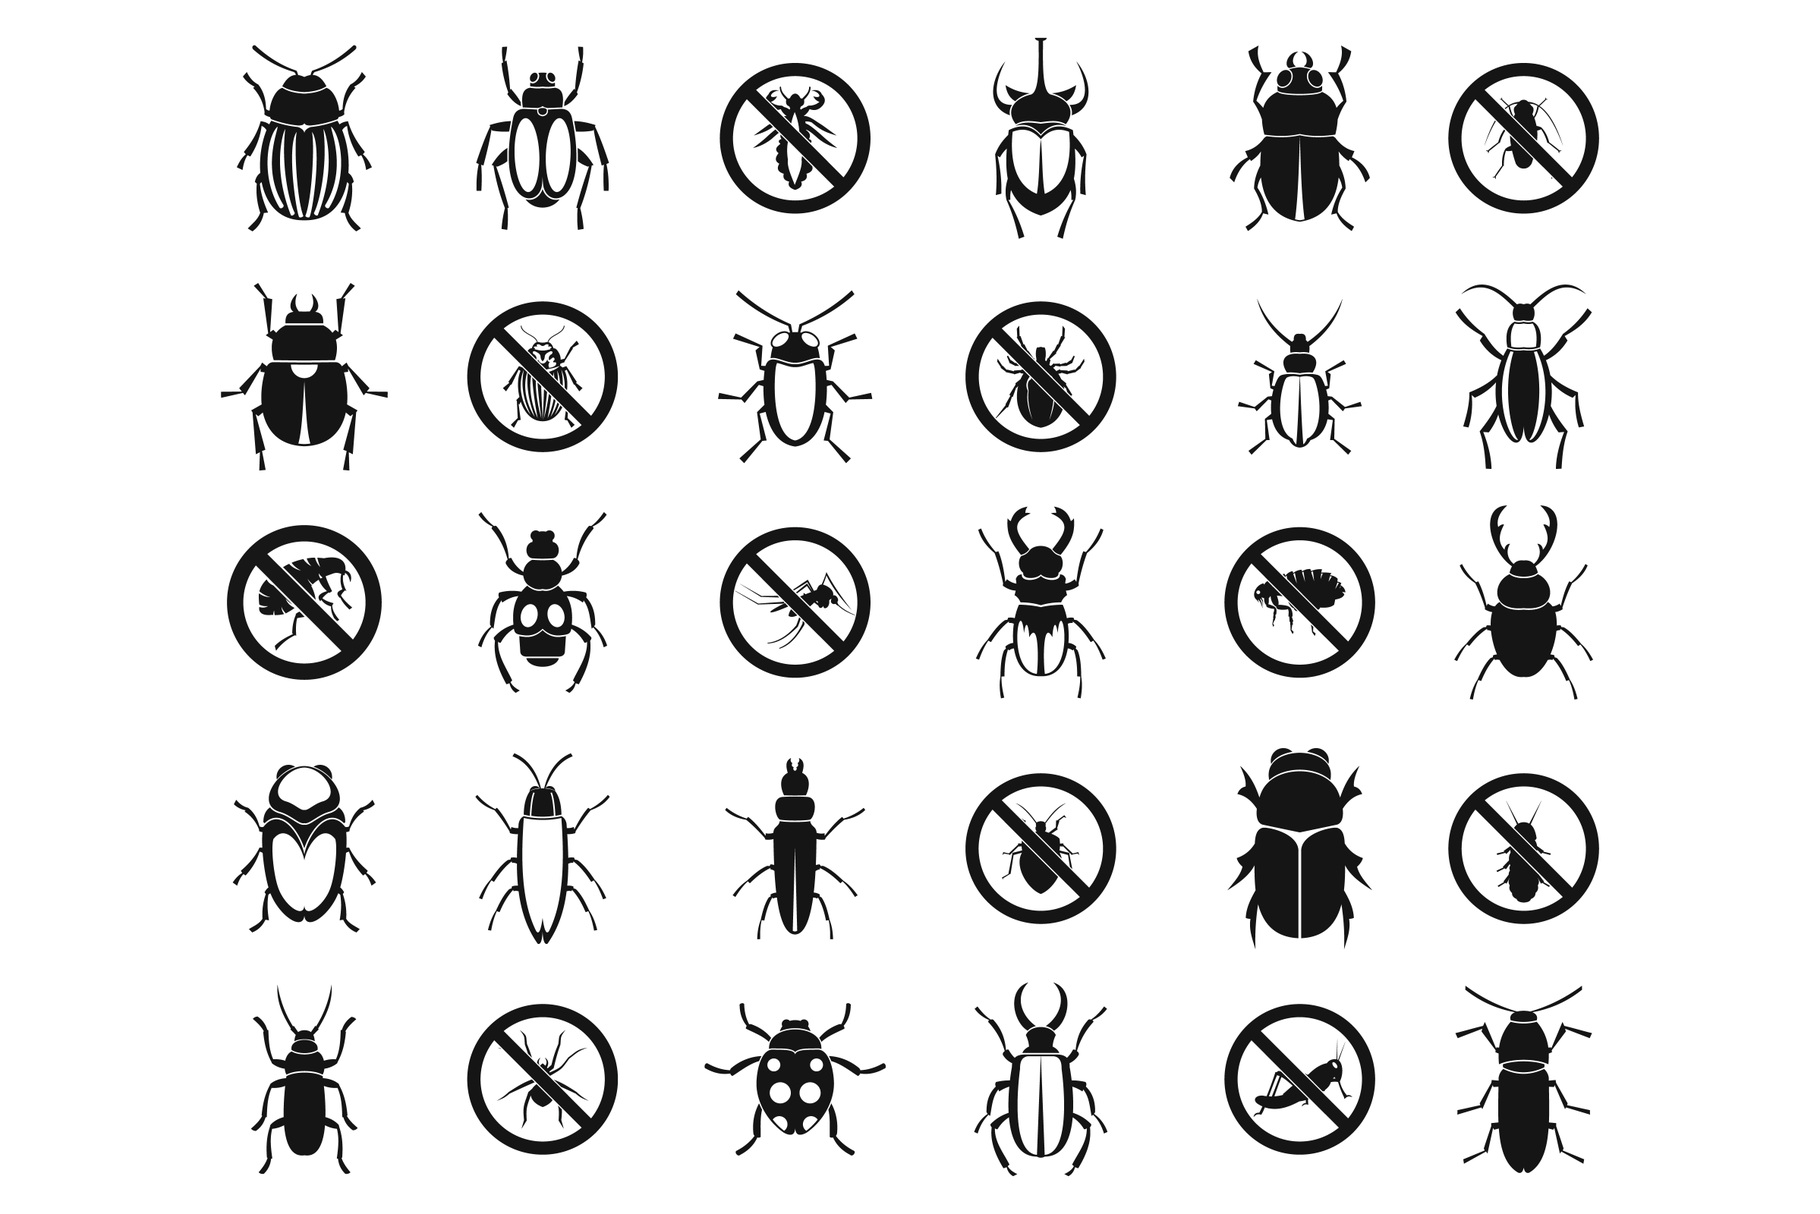 Bugs icon set, simple style example image 1